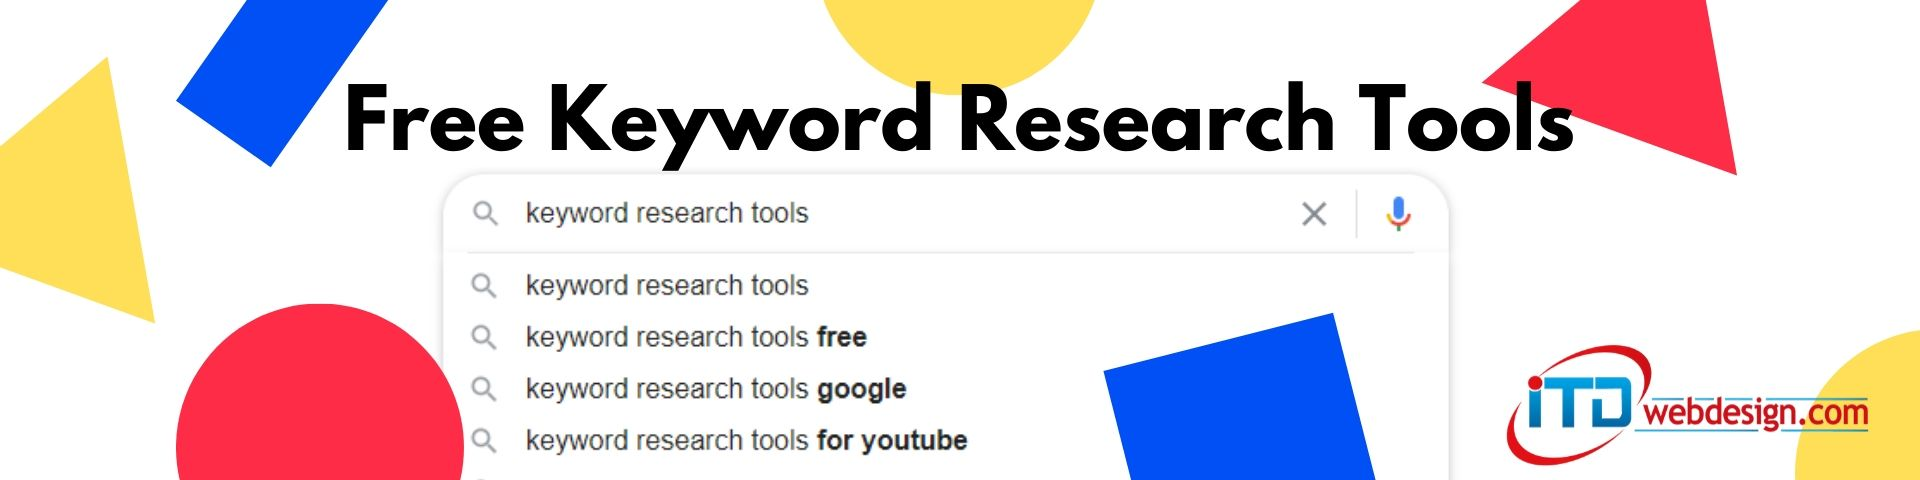 free keyword research tools banner